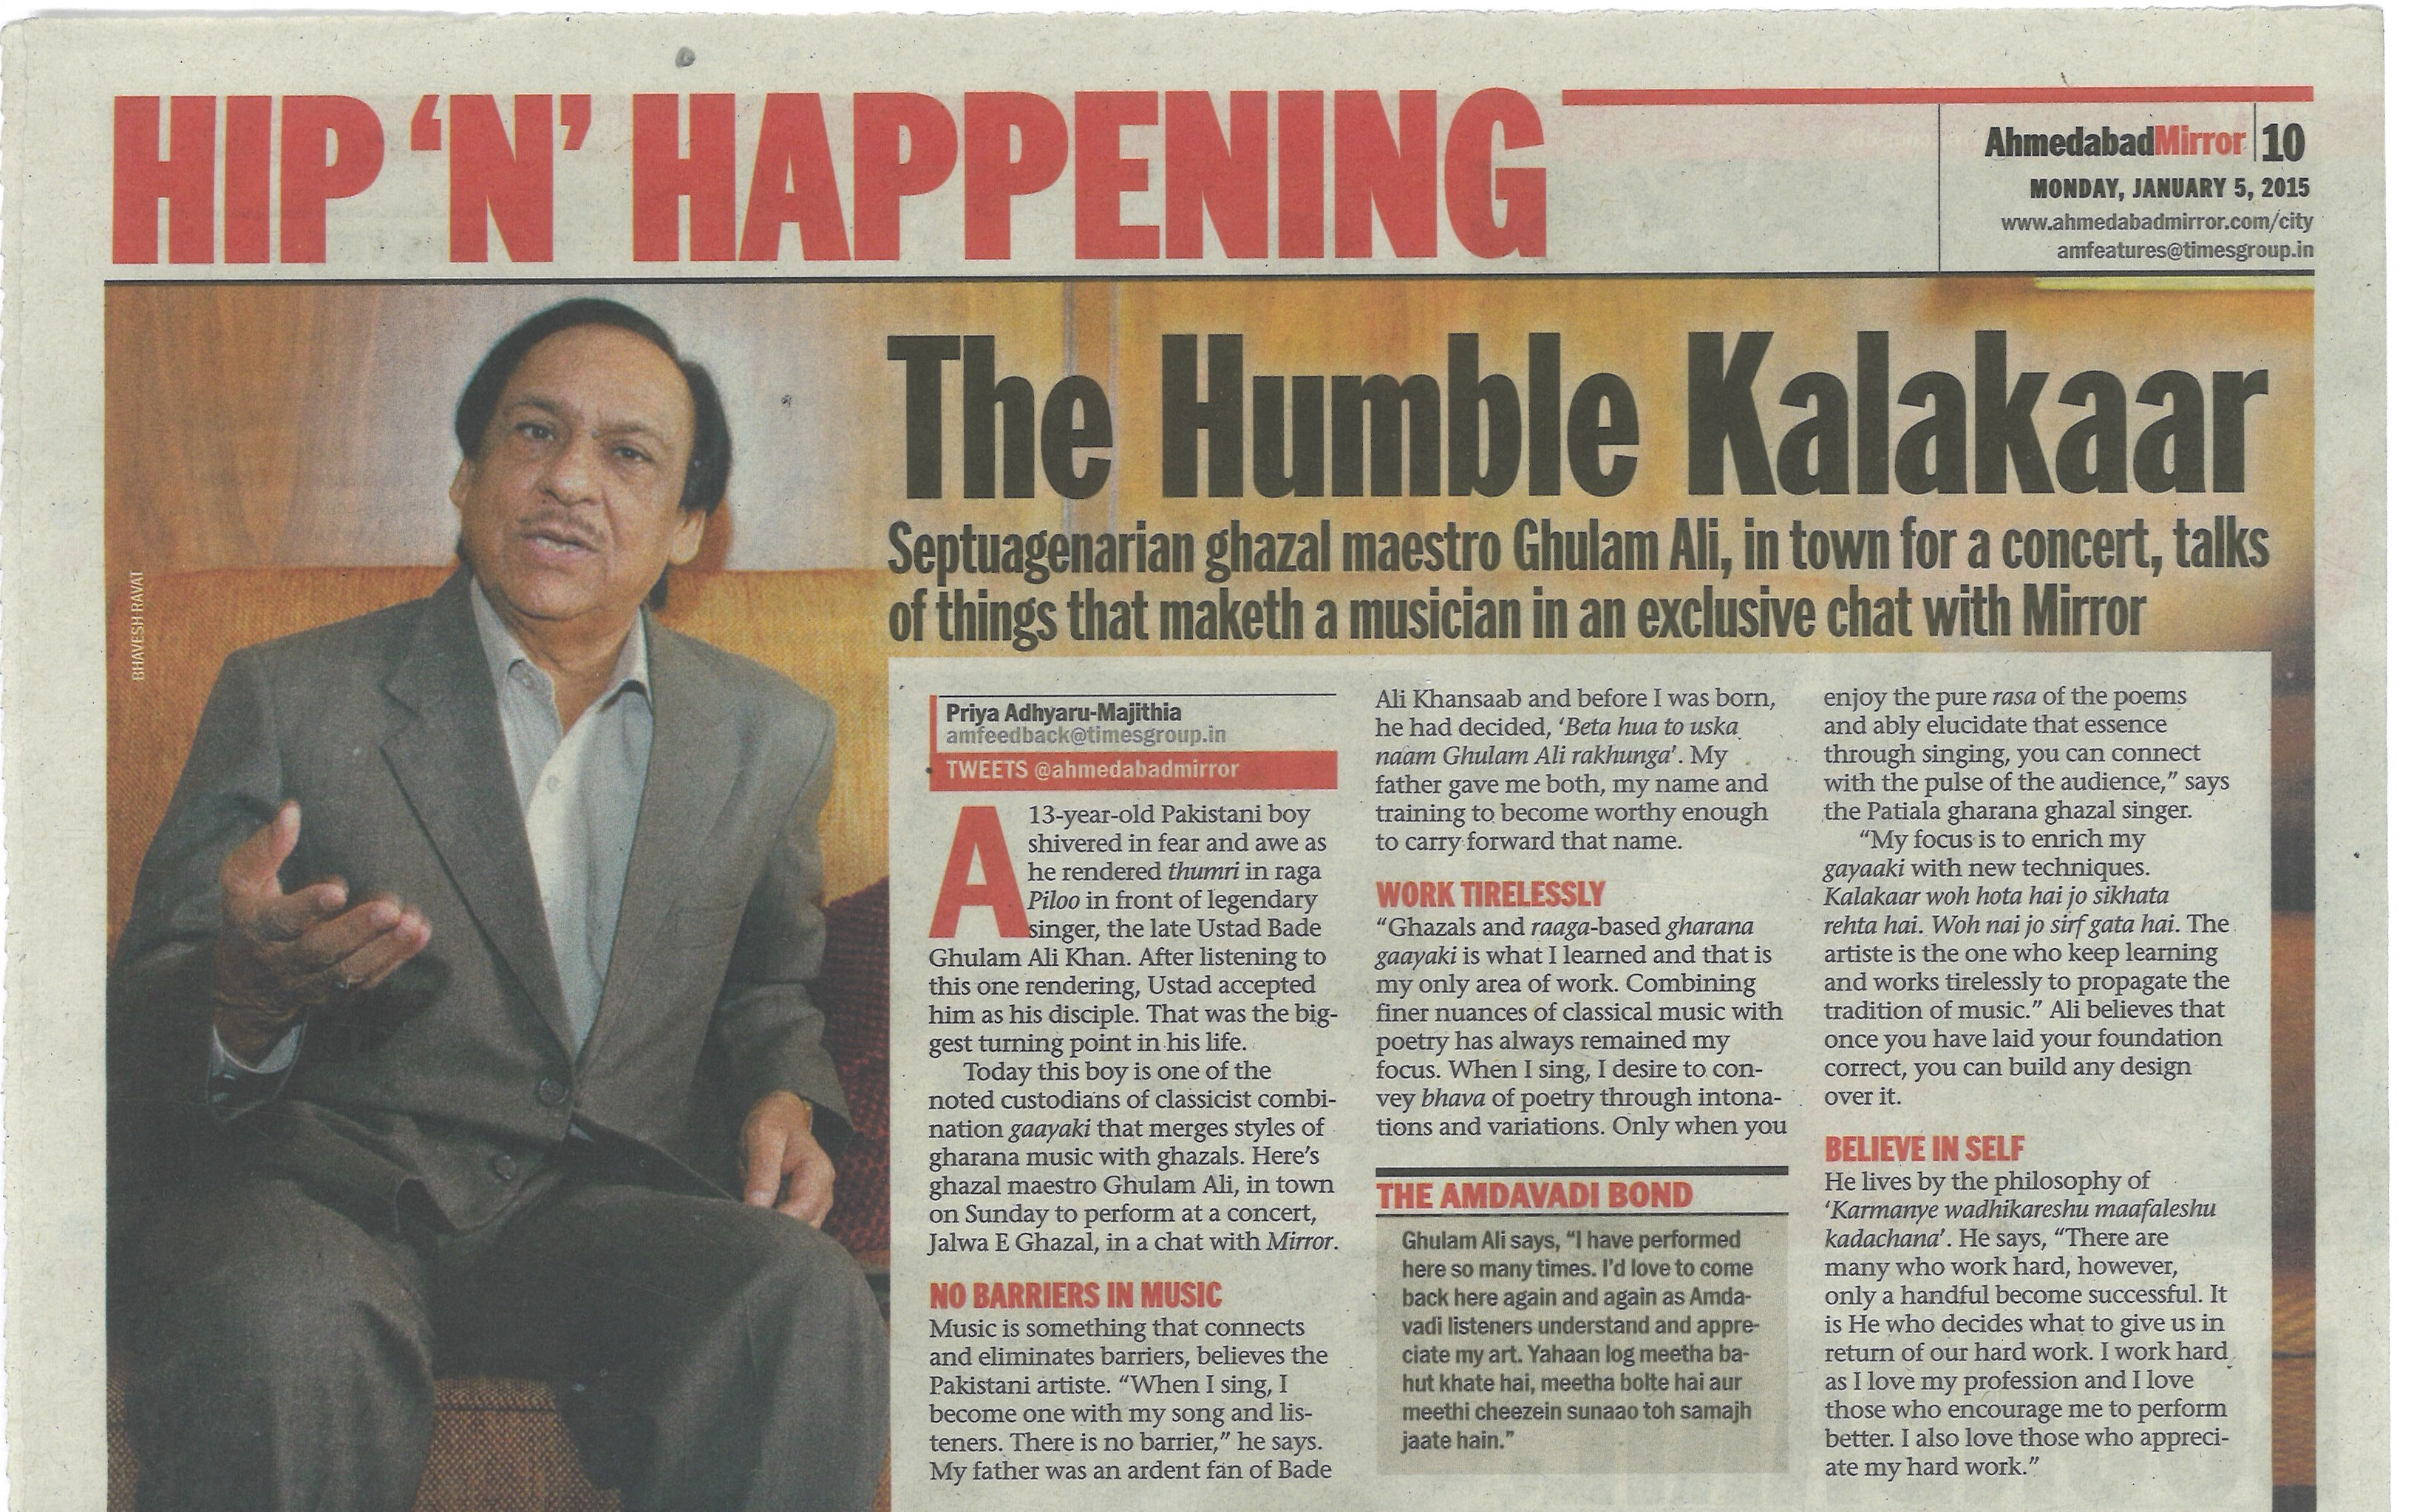 The Humble Kalakaar